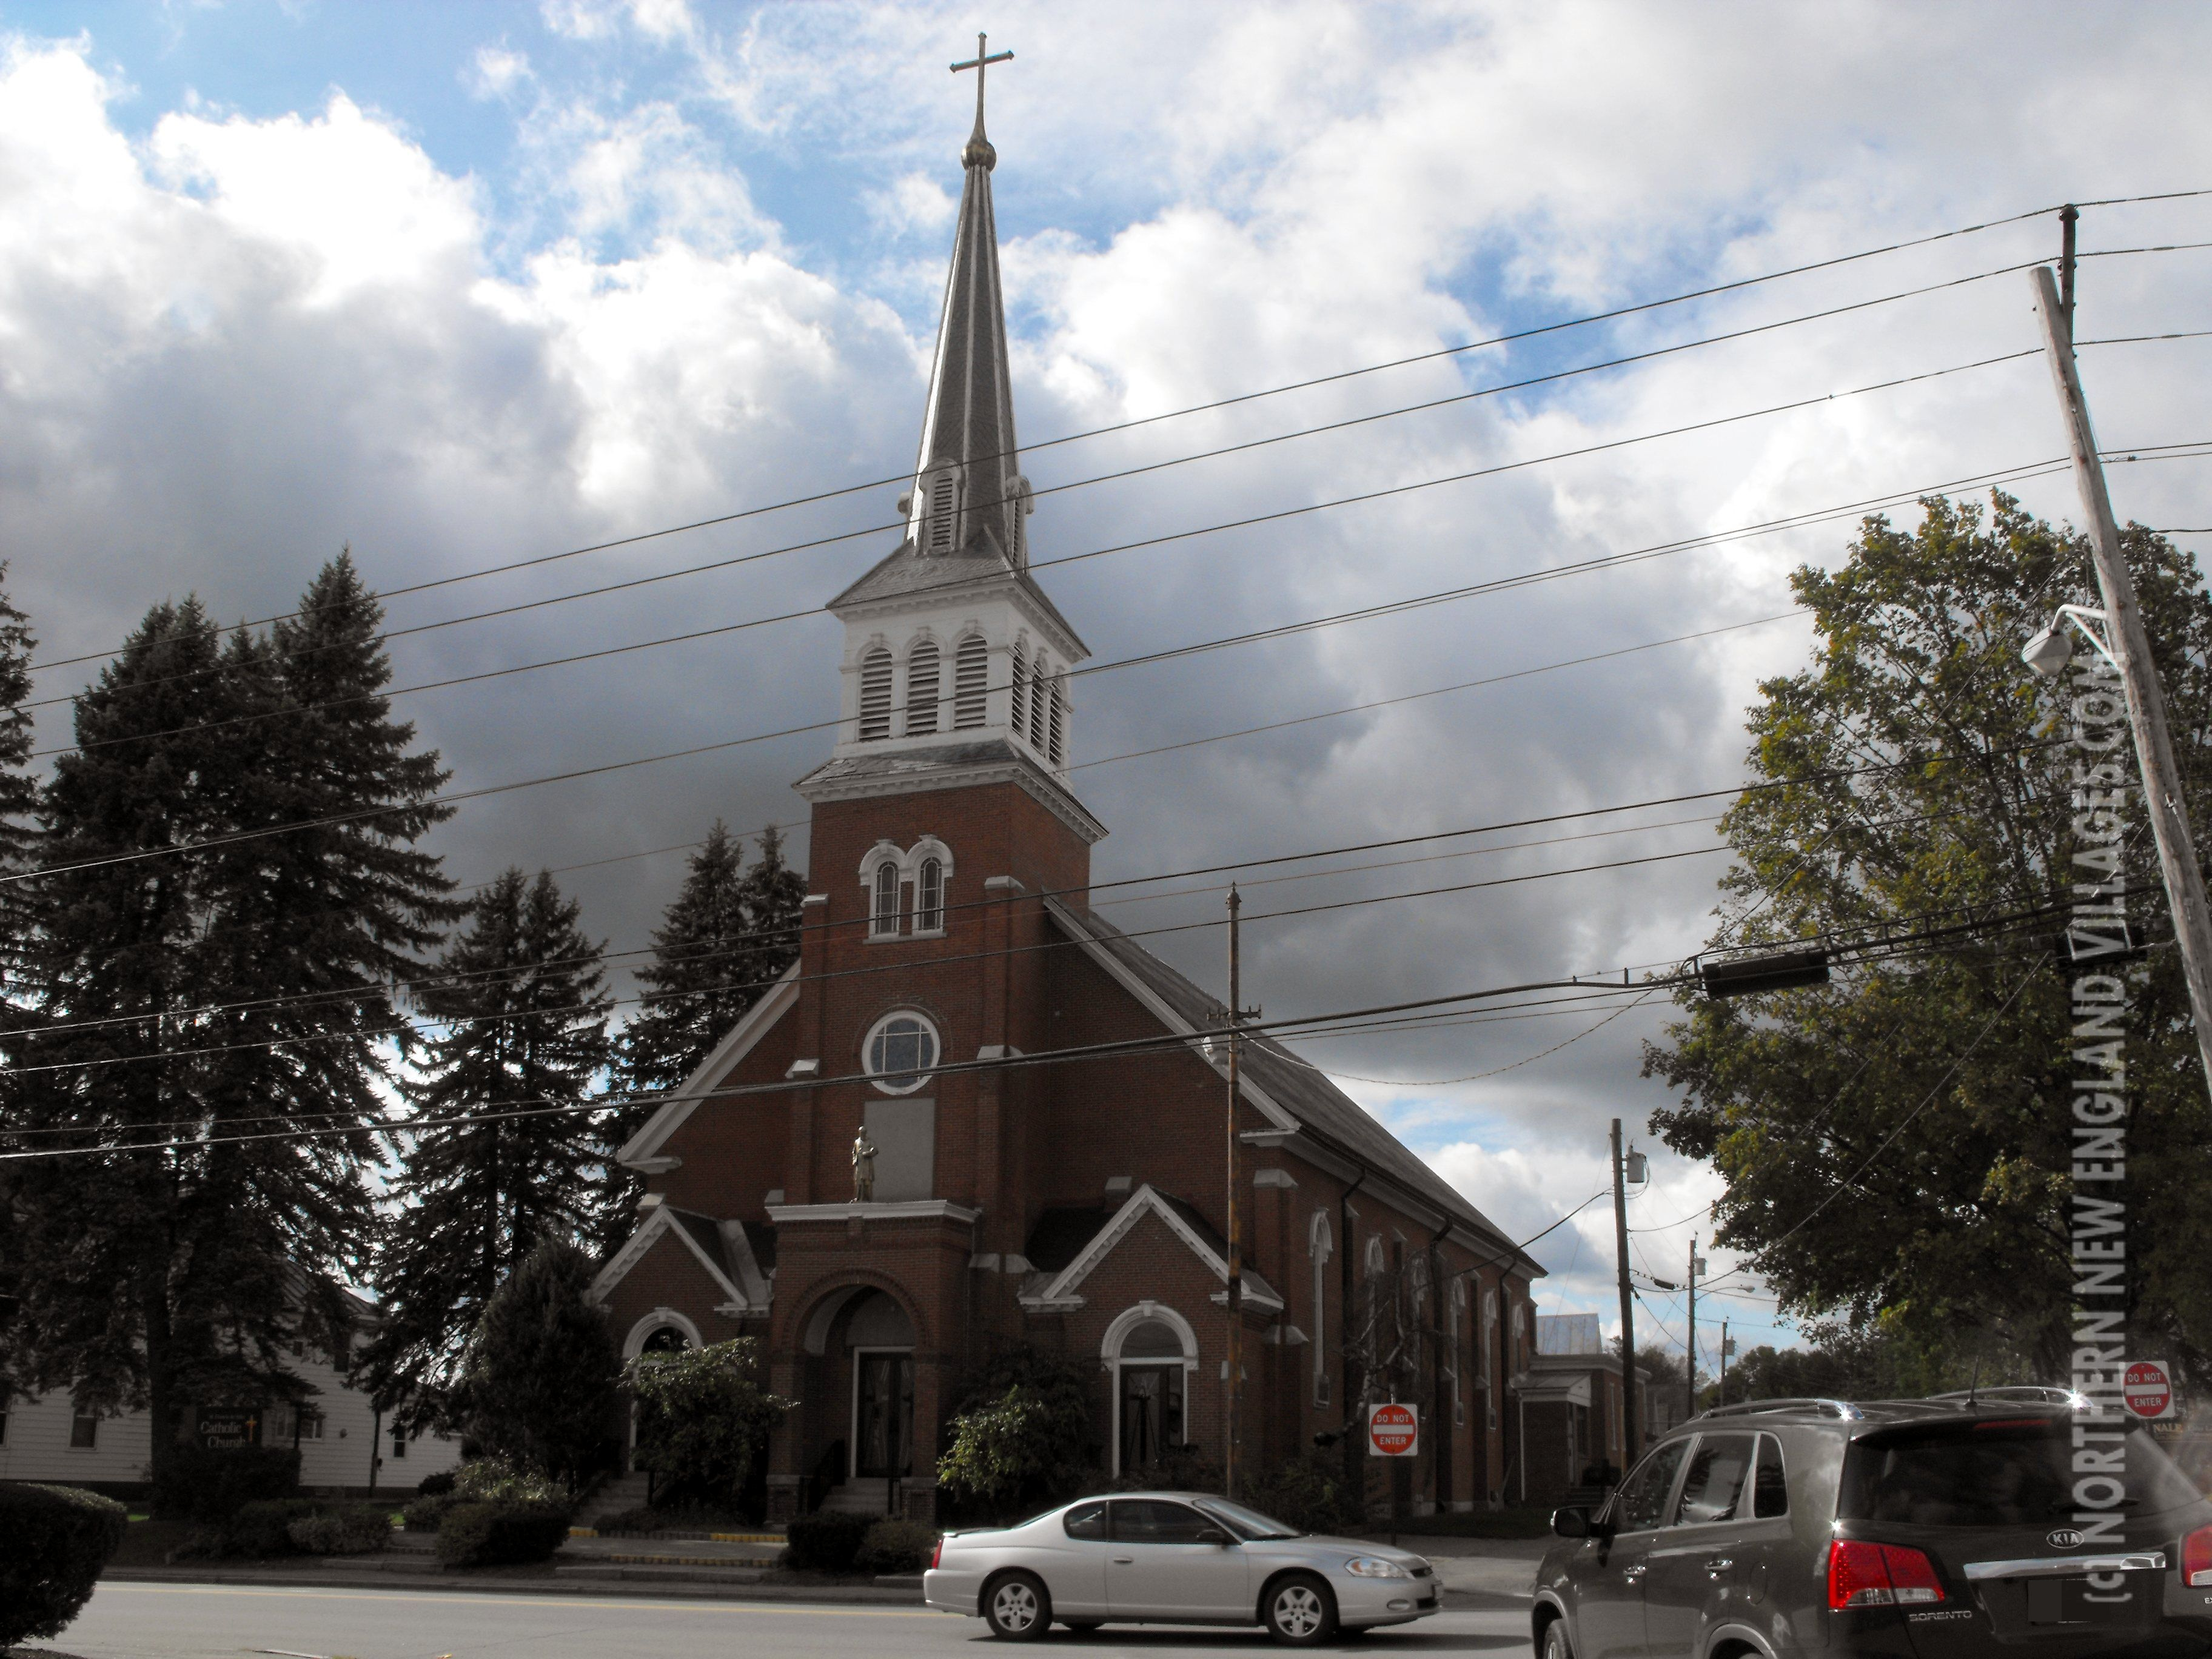 Saint Francis De Sales Church In Waterville Maine Is Slated For Demolition To Make Way For Elderly Housing Waterville Waterville Maine Maine